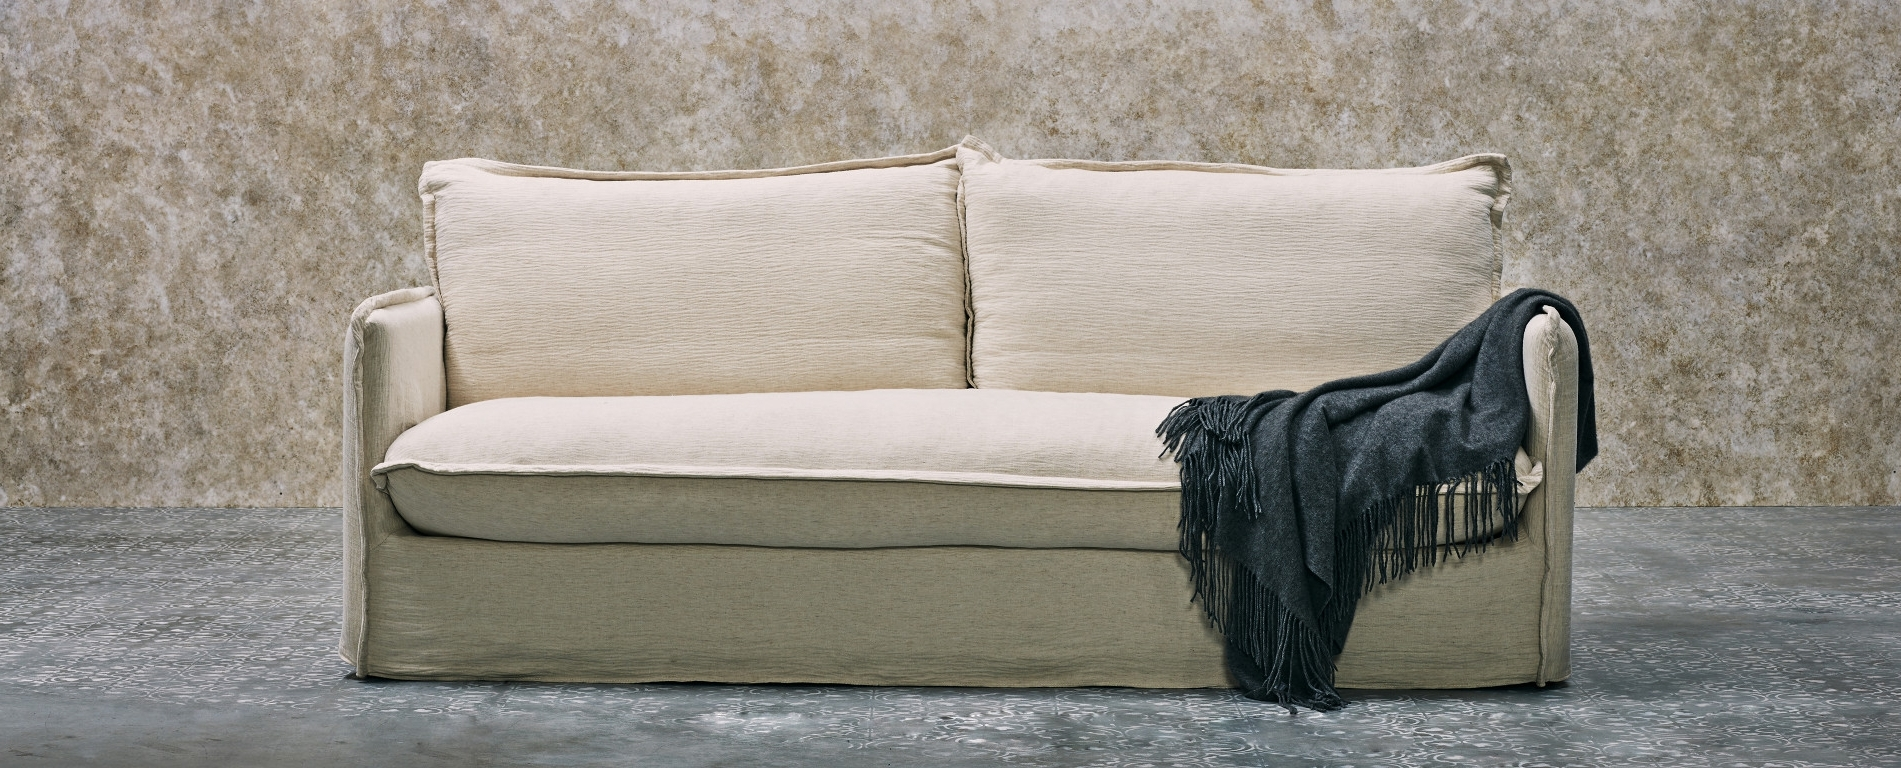 Feather Filled Sofa W/ Pillow Style Cushions (View 7 of 15)